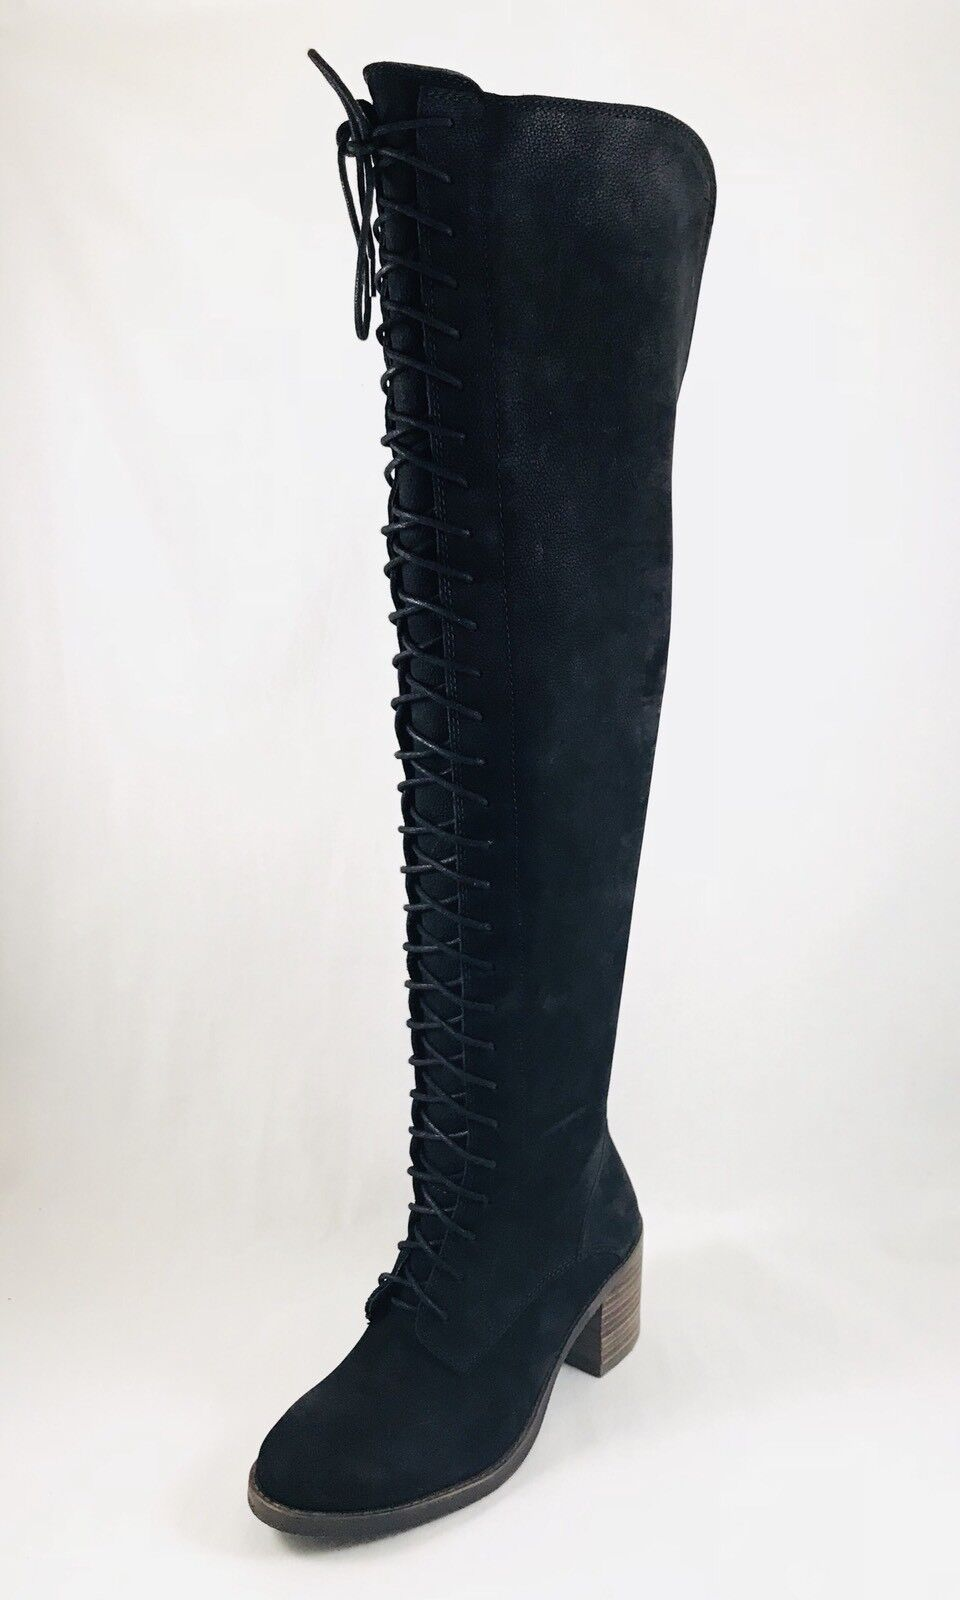 Lucky Brand Riddick Womens Round Toe Leather Black Over the Knee Boot Size 6.5